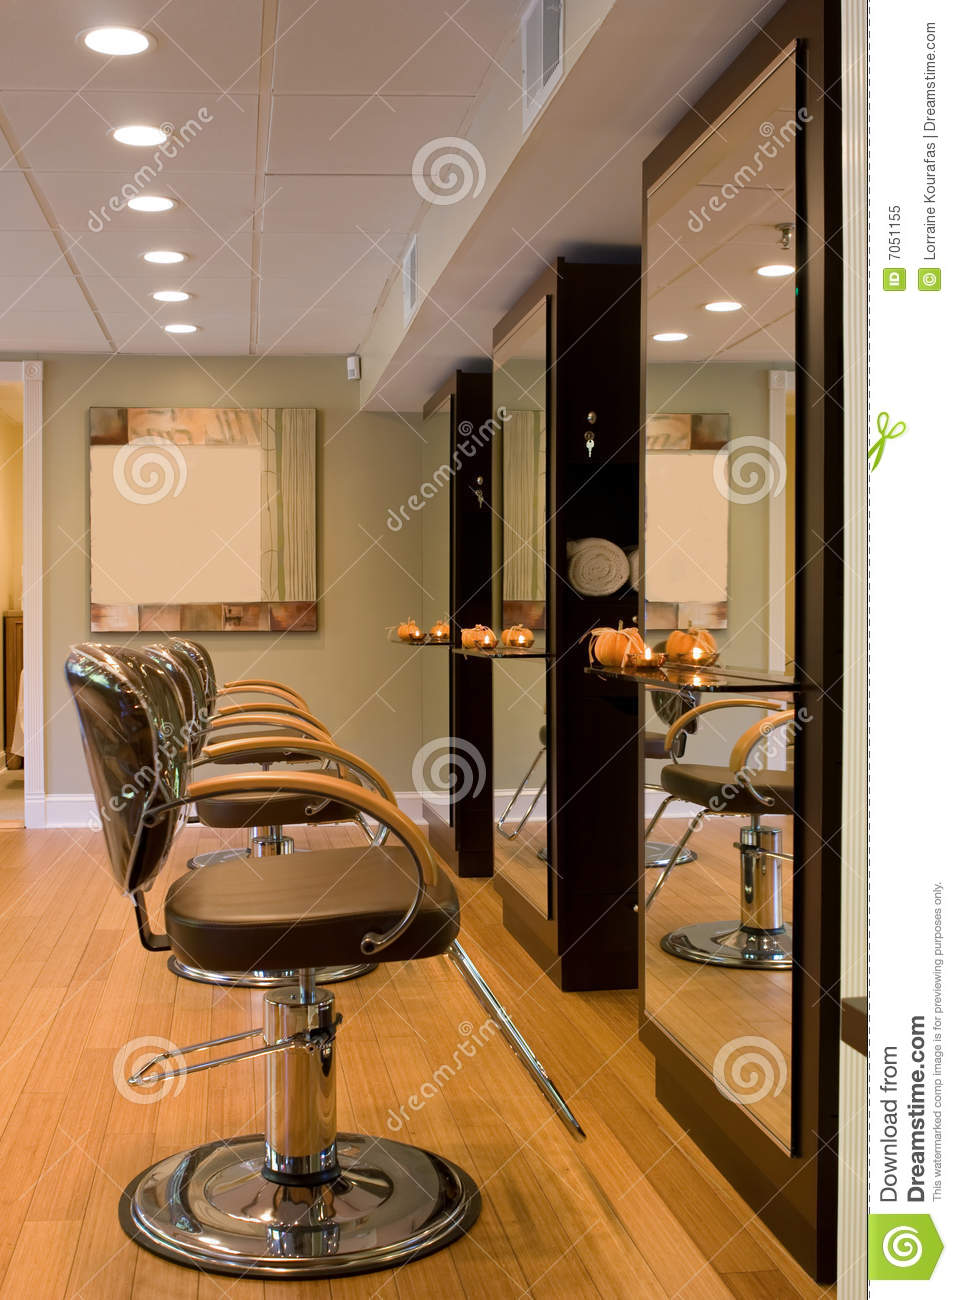 Interior new hair salon royalty free stock photo image for Interior news